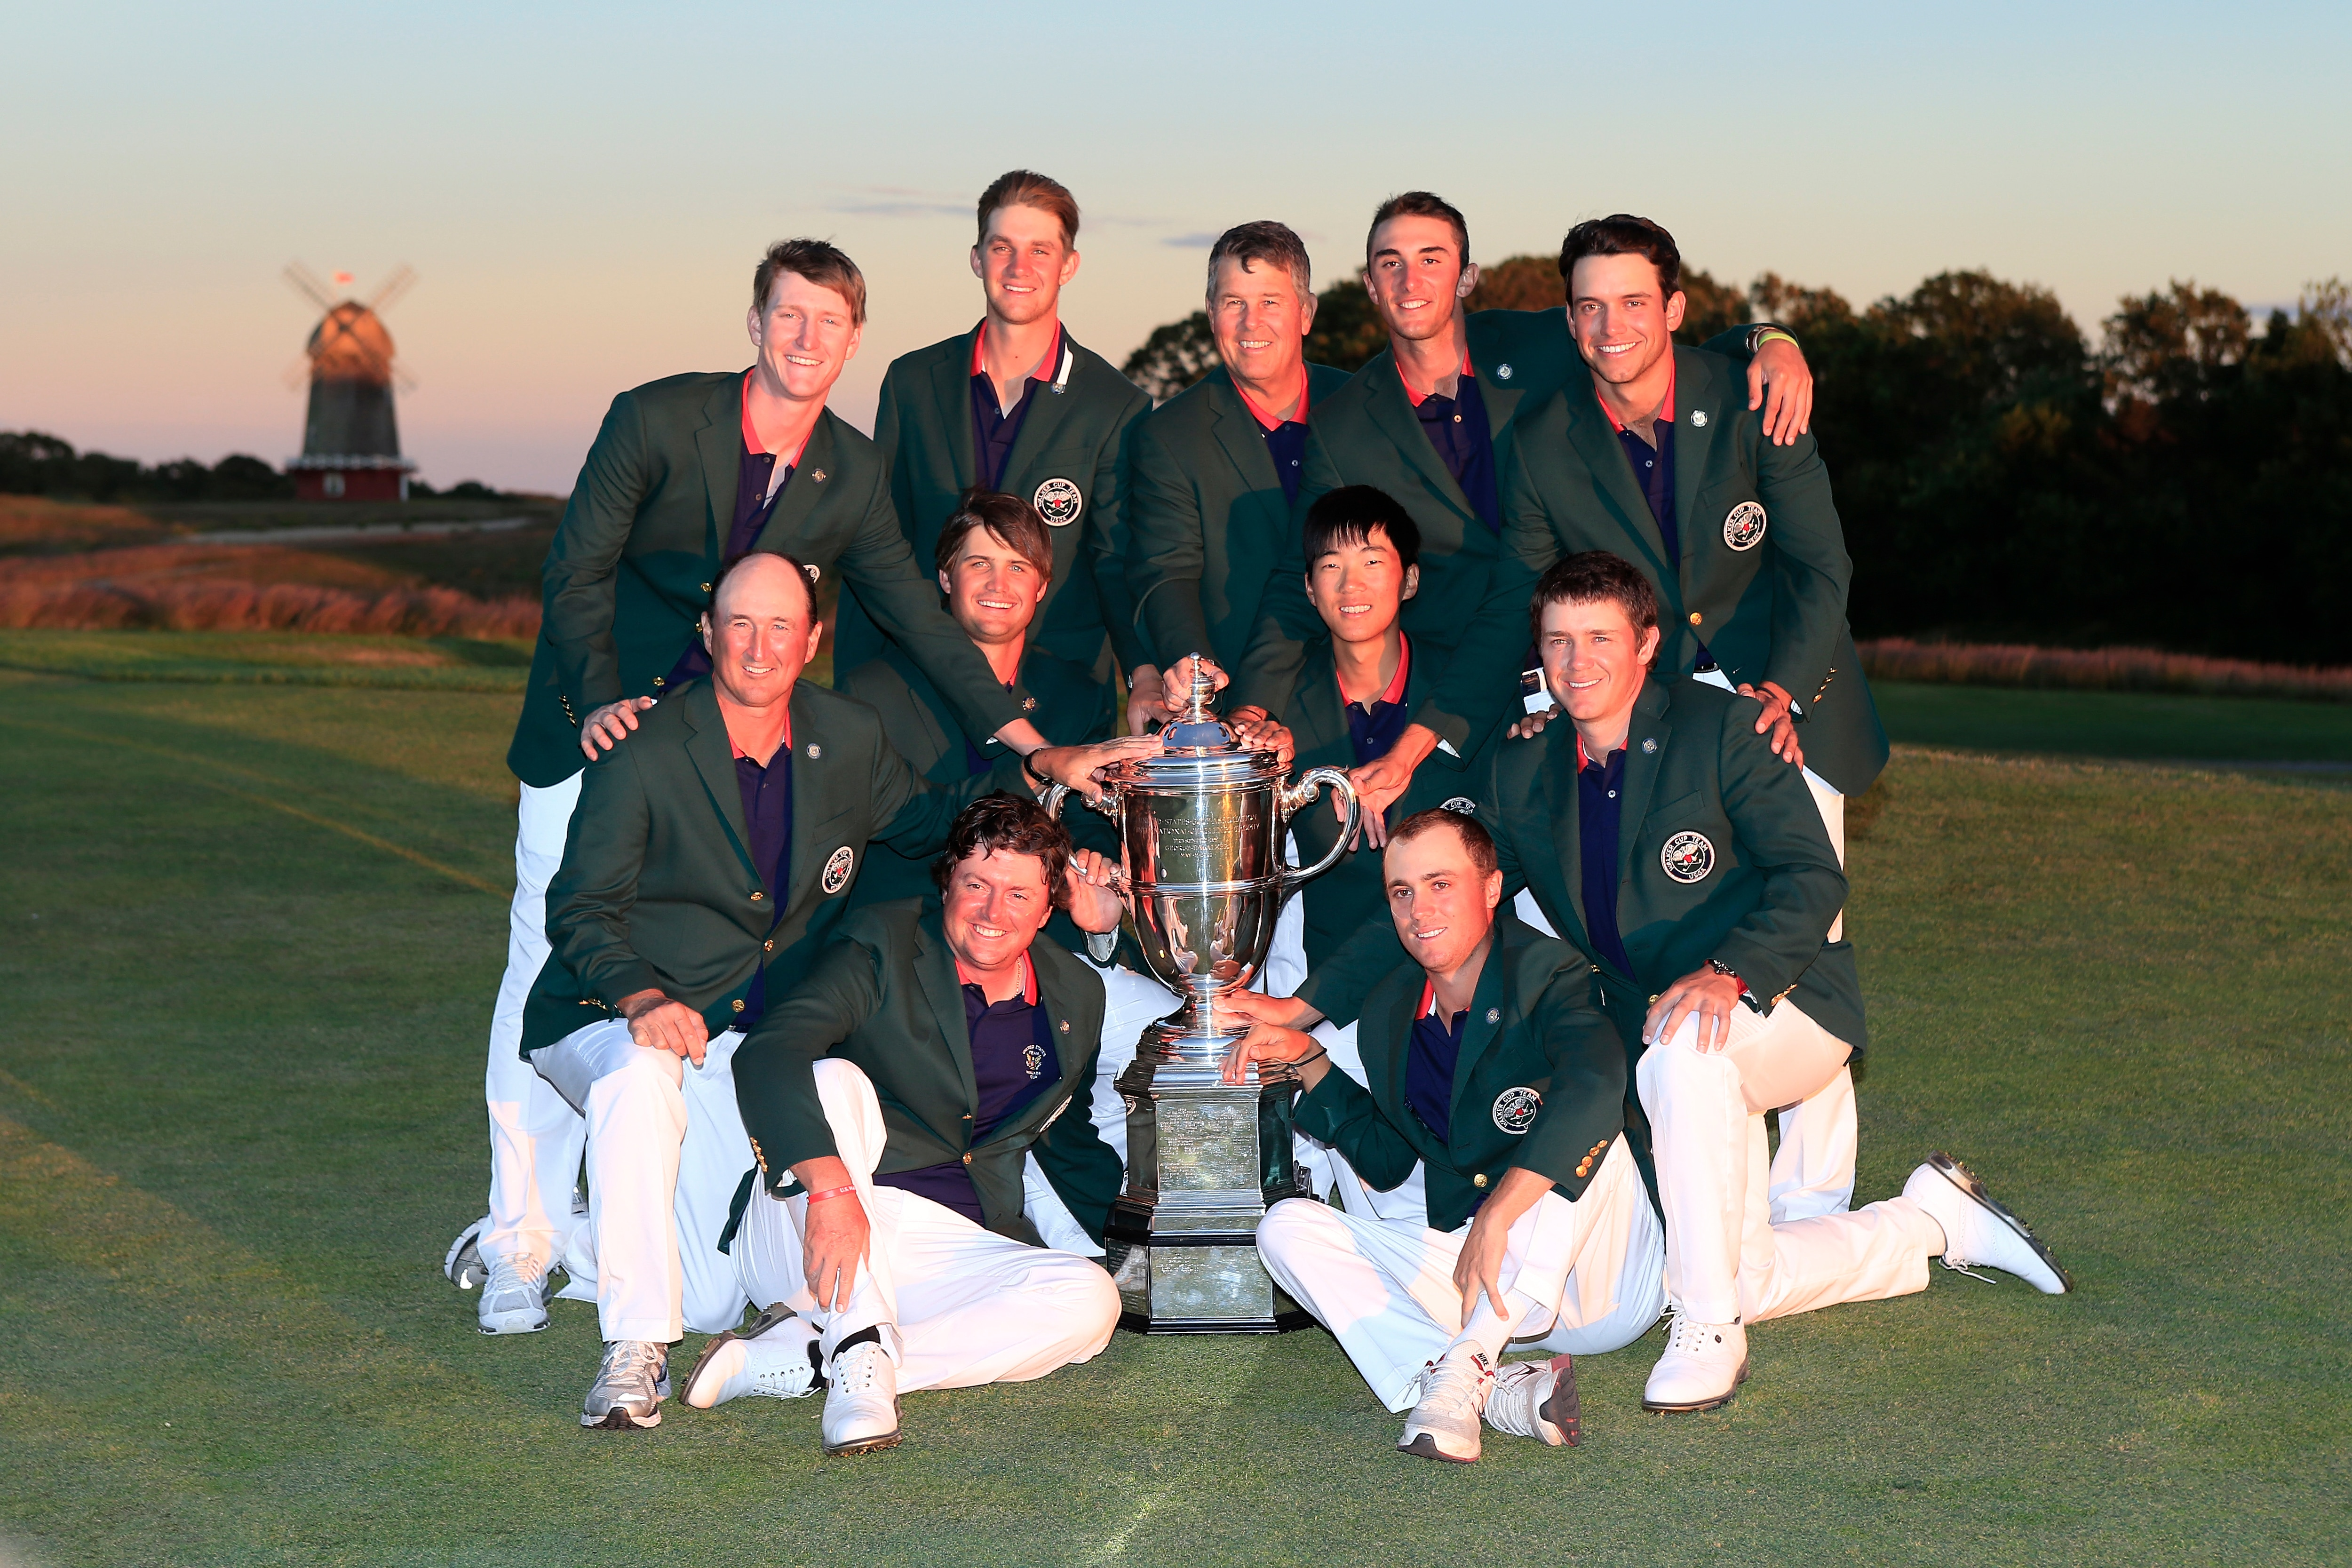 United States, 2013 Walker Cup